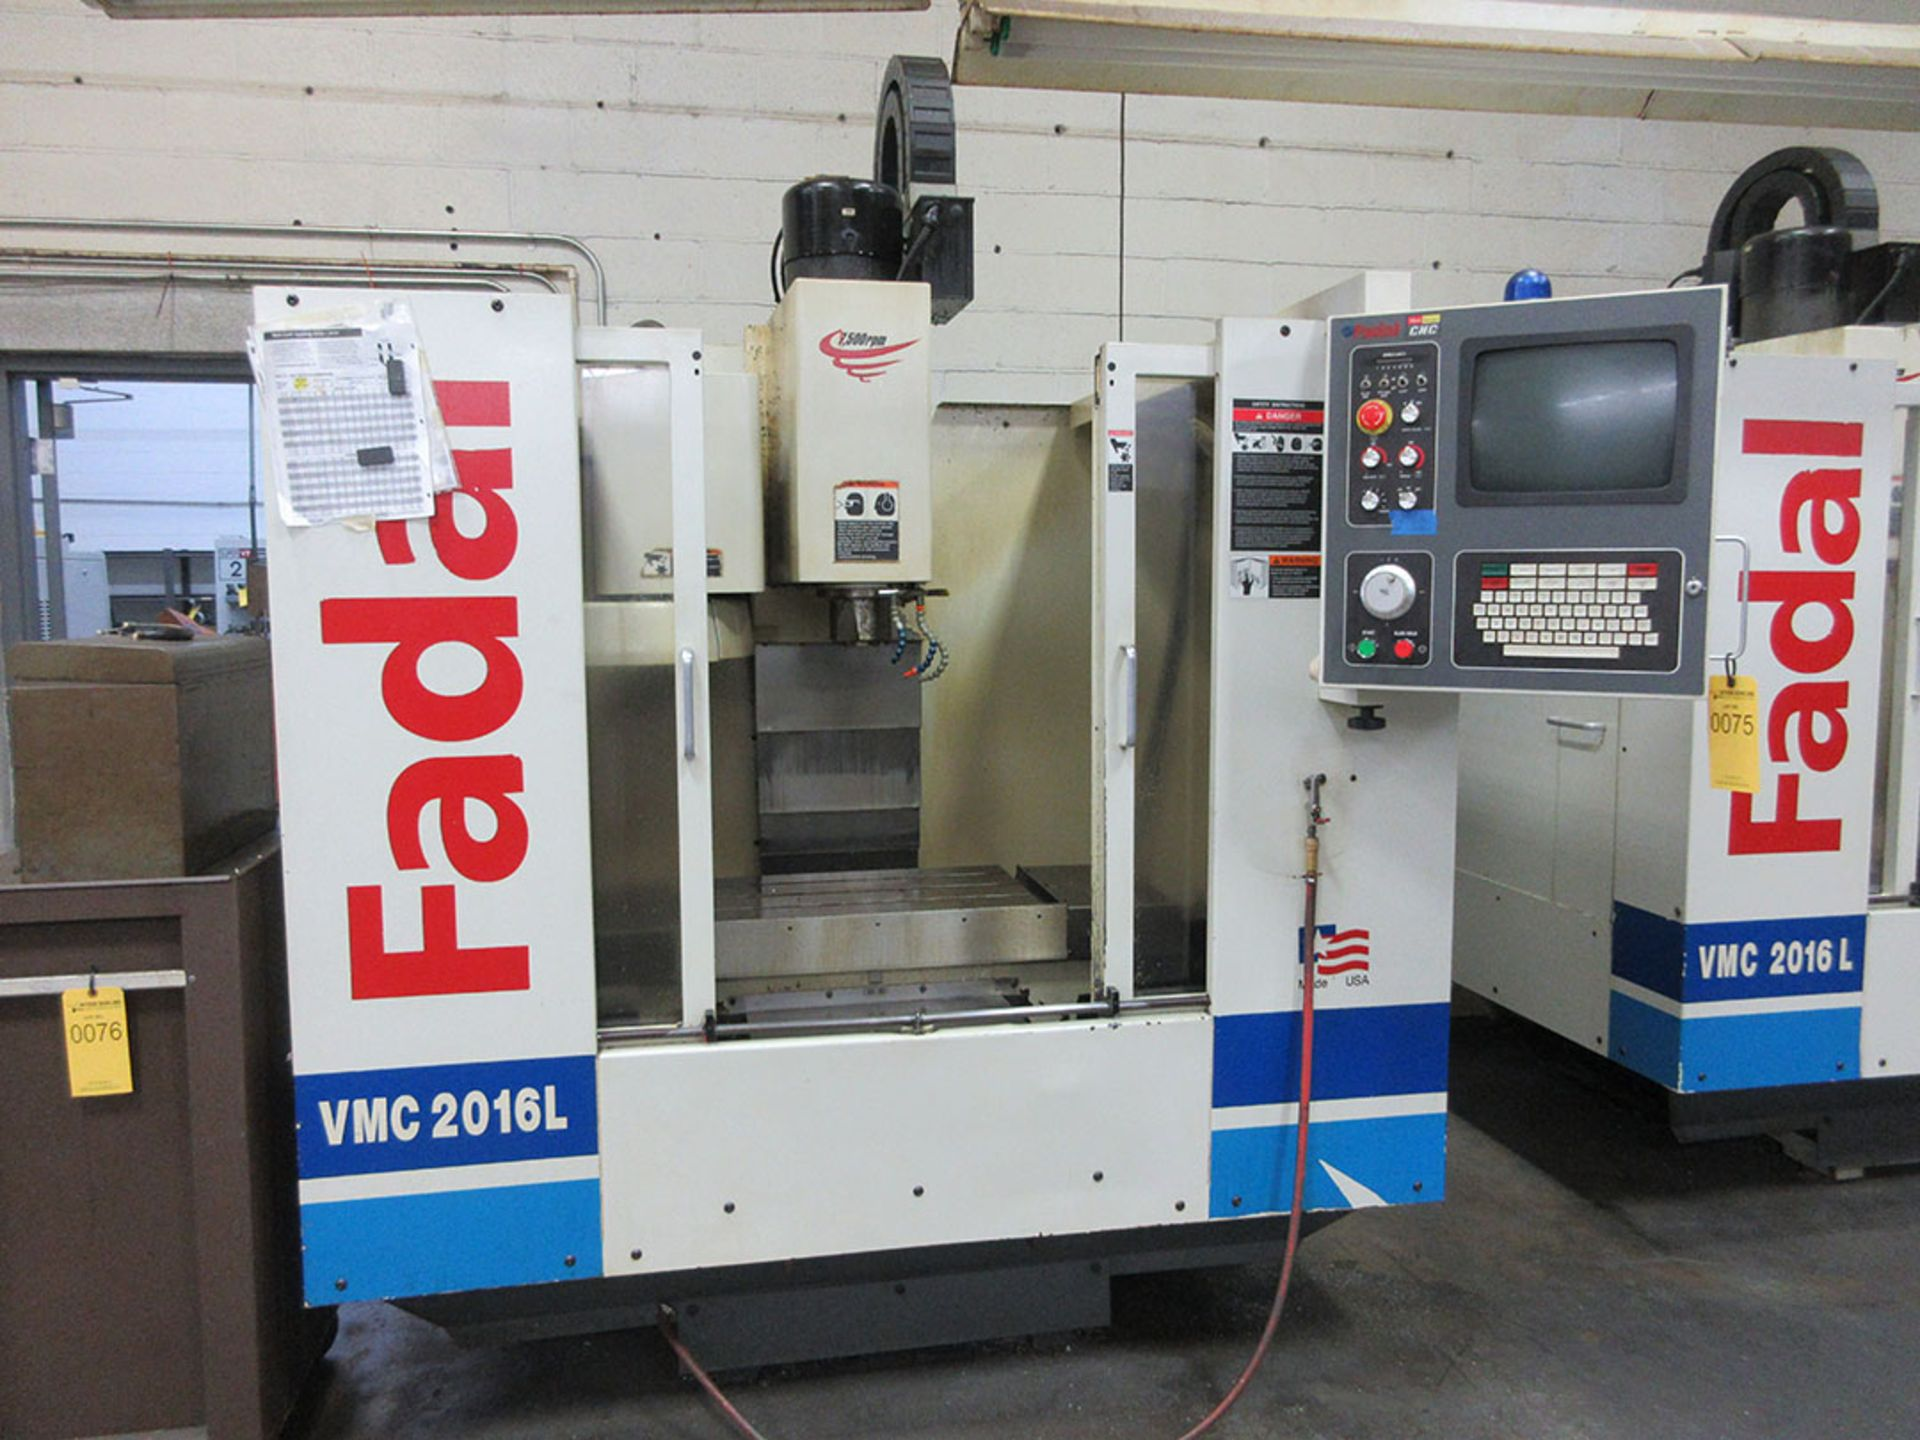 Lot 19 - 2000 FADAL VMC 2016L CNC Vertical Mill Machining Center